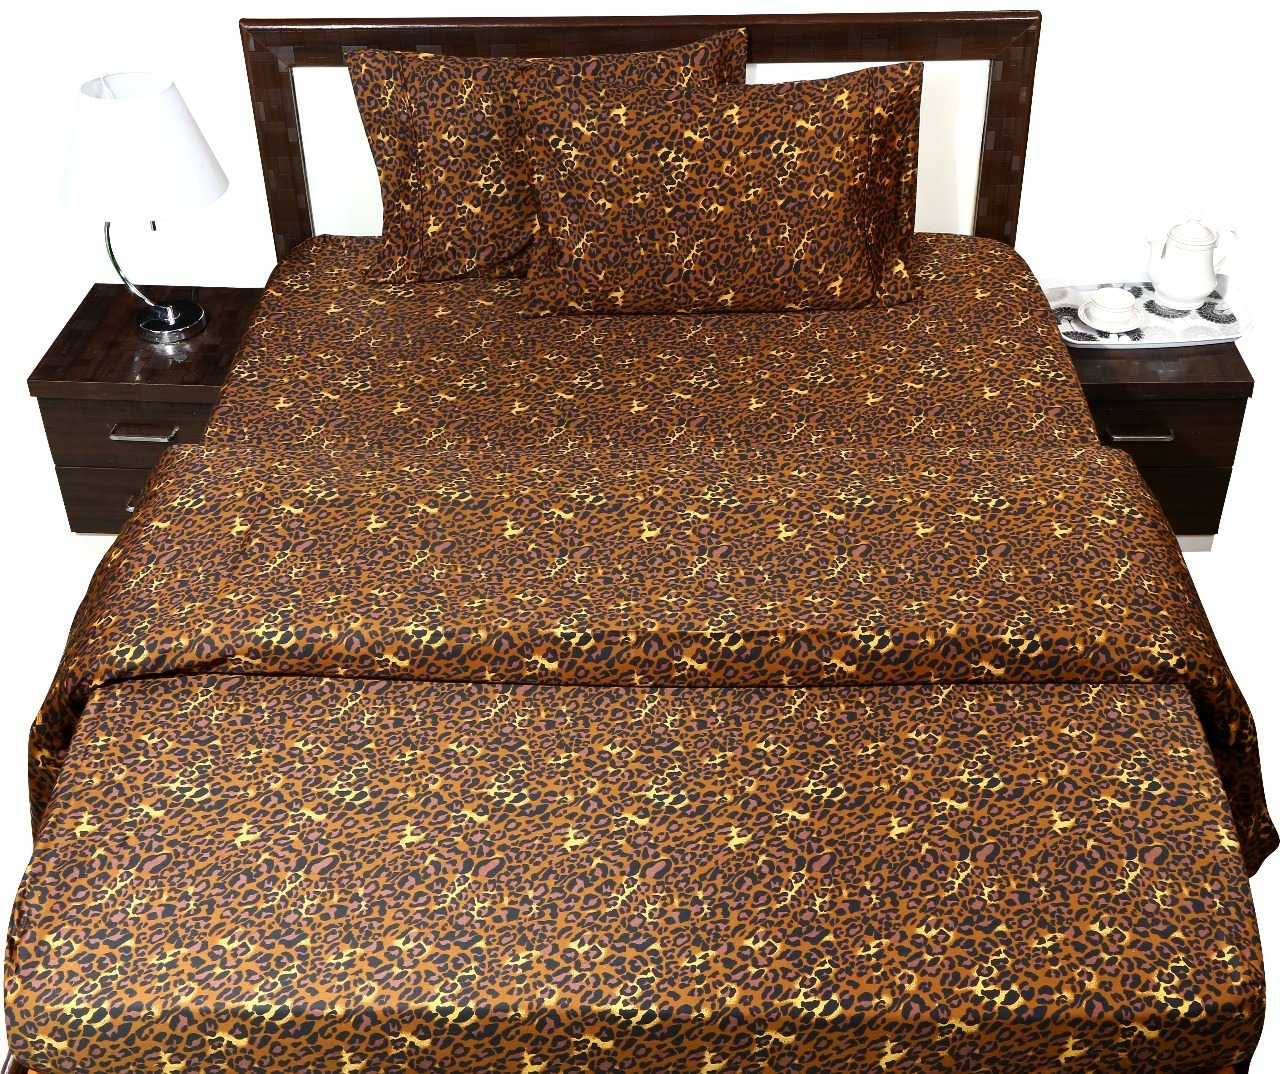 Cotton Sheets - 4-Piece Sheet Set Twin Size 39''X75'' Leopard Animal Print 100% Egyptian Cotton 600 Thread Count (16'' Drop) Bed Sheets